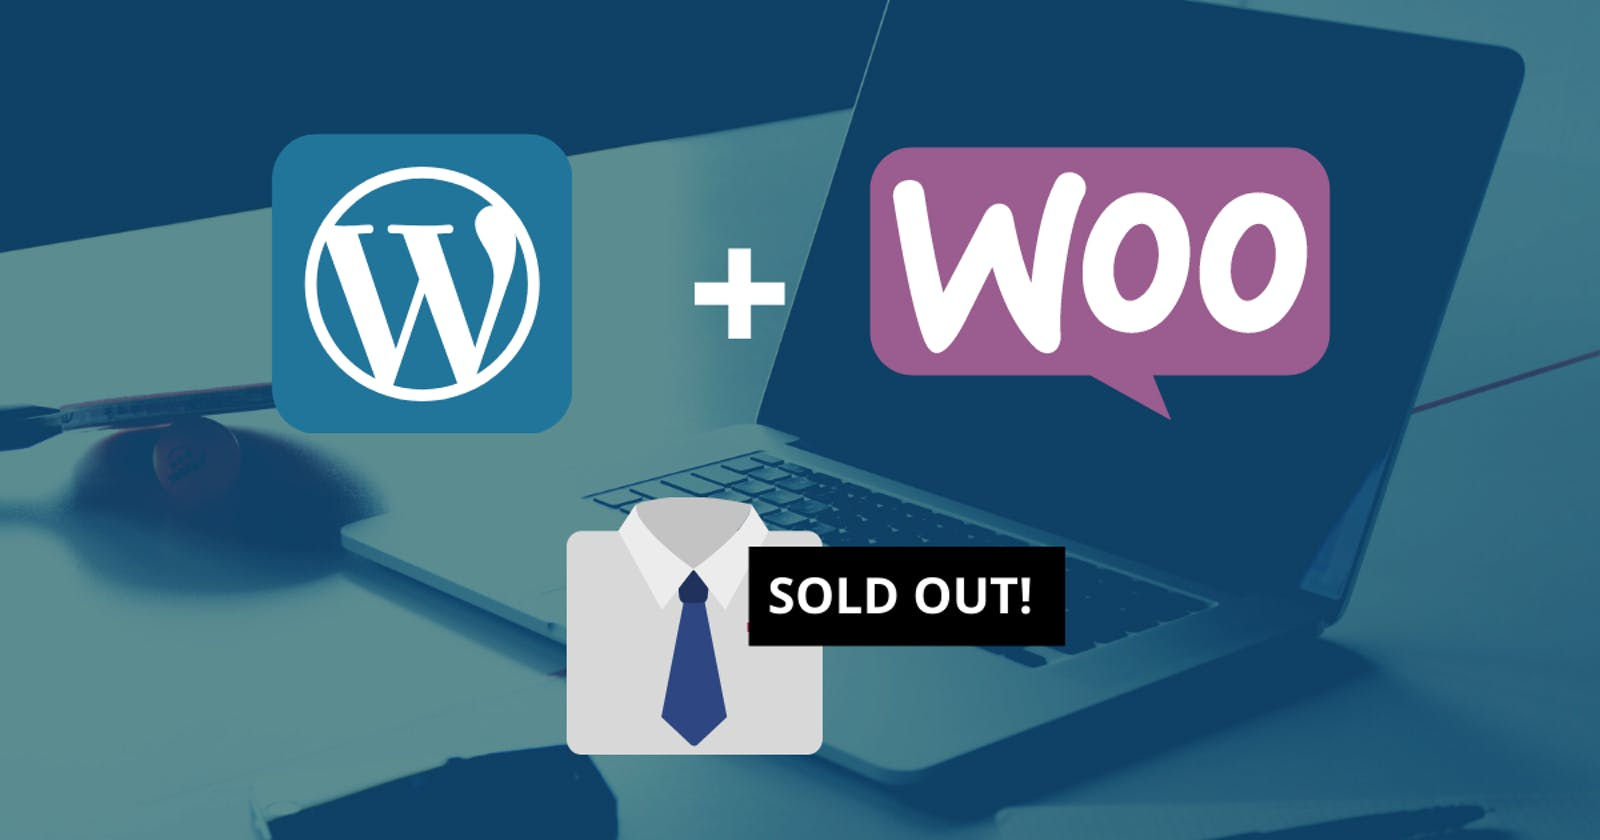 How to add a Sold Out snippet or badge on a particular product using Woocommerce?